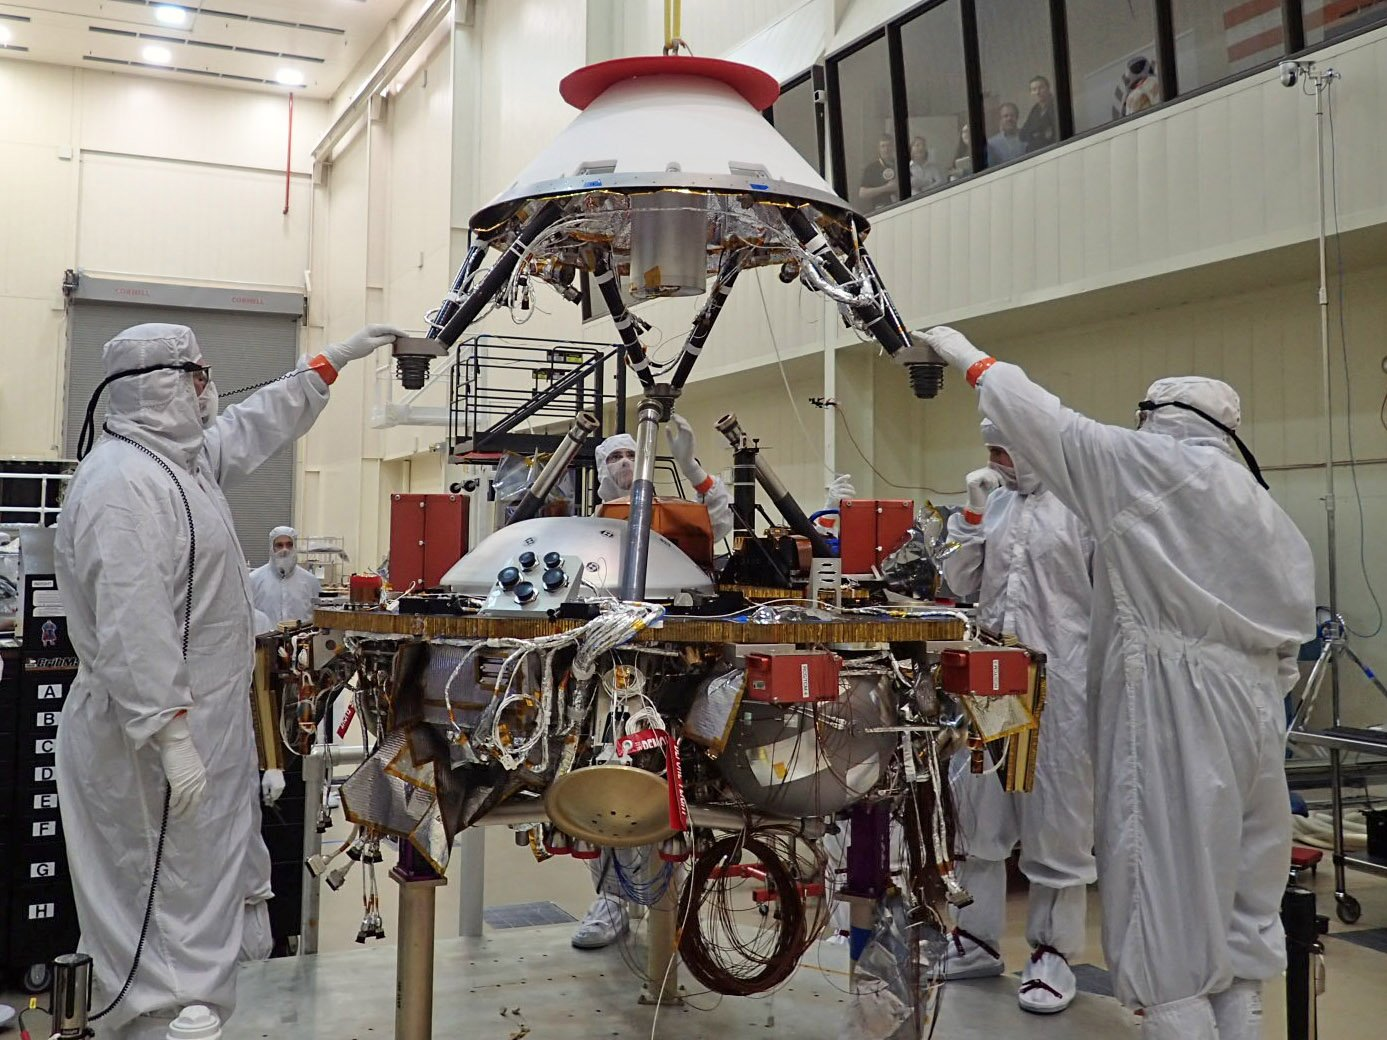 Nasa S Insight Lander Will Study The Martian Deep Interior In 2018 Engineering360